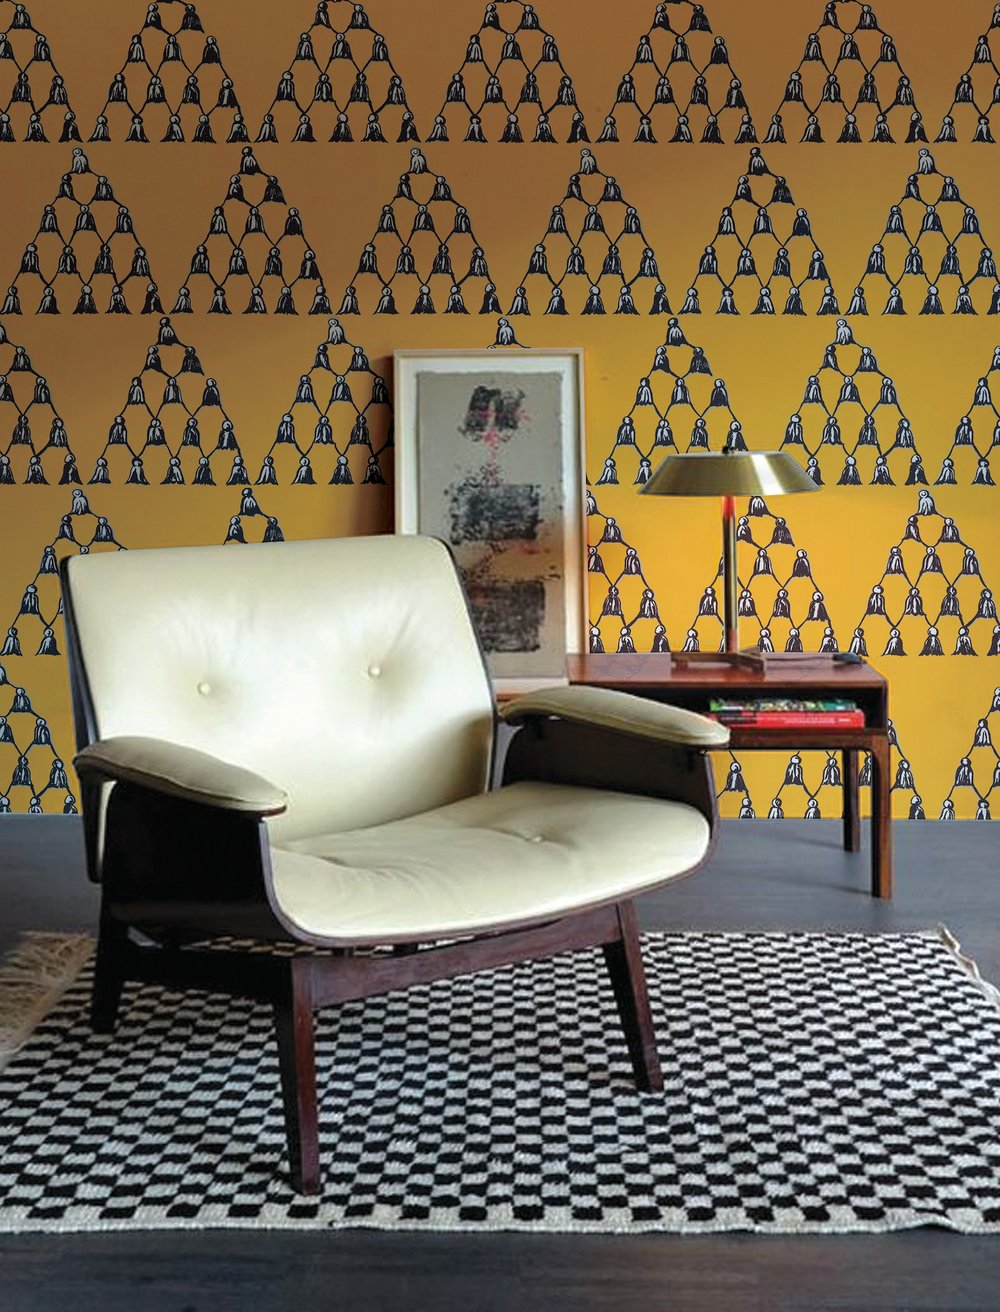 CHE FIGATA PRINT in the deep ochre color way in a Topanga Canyon bungalow.